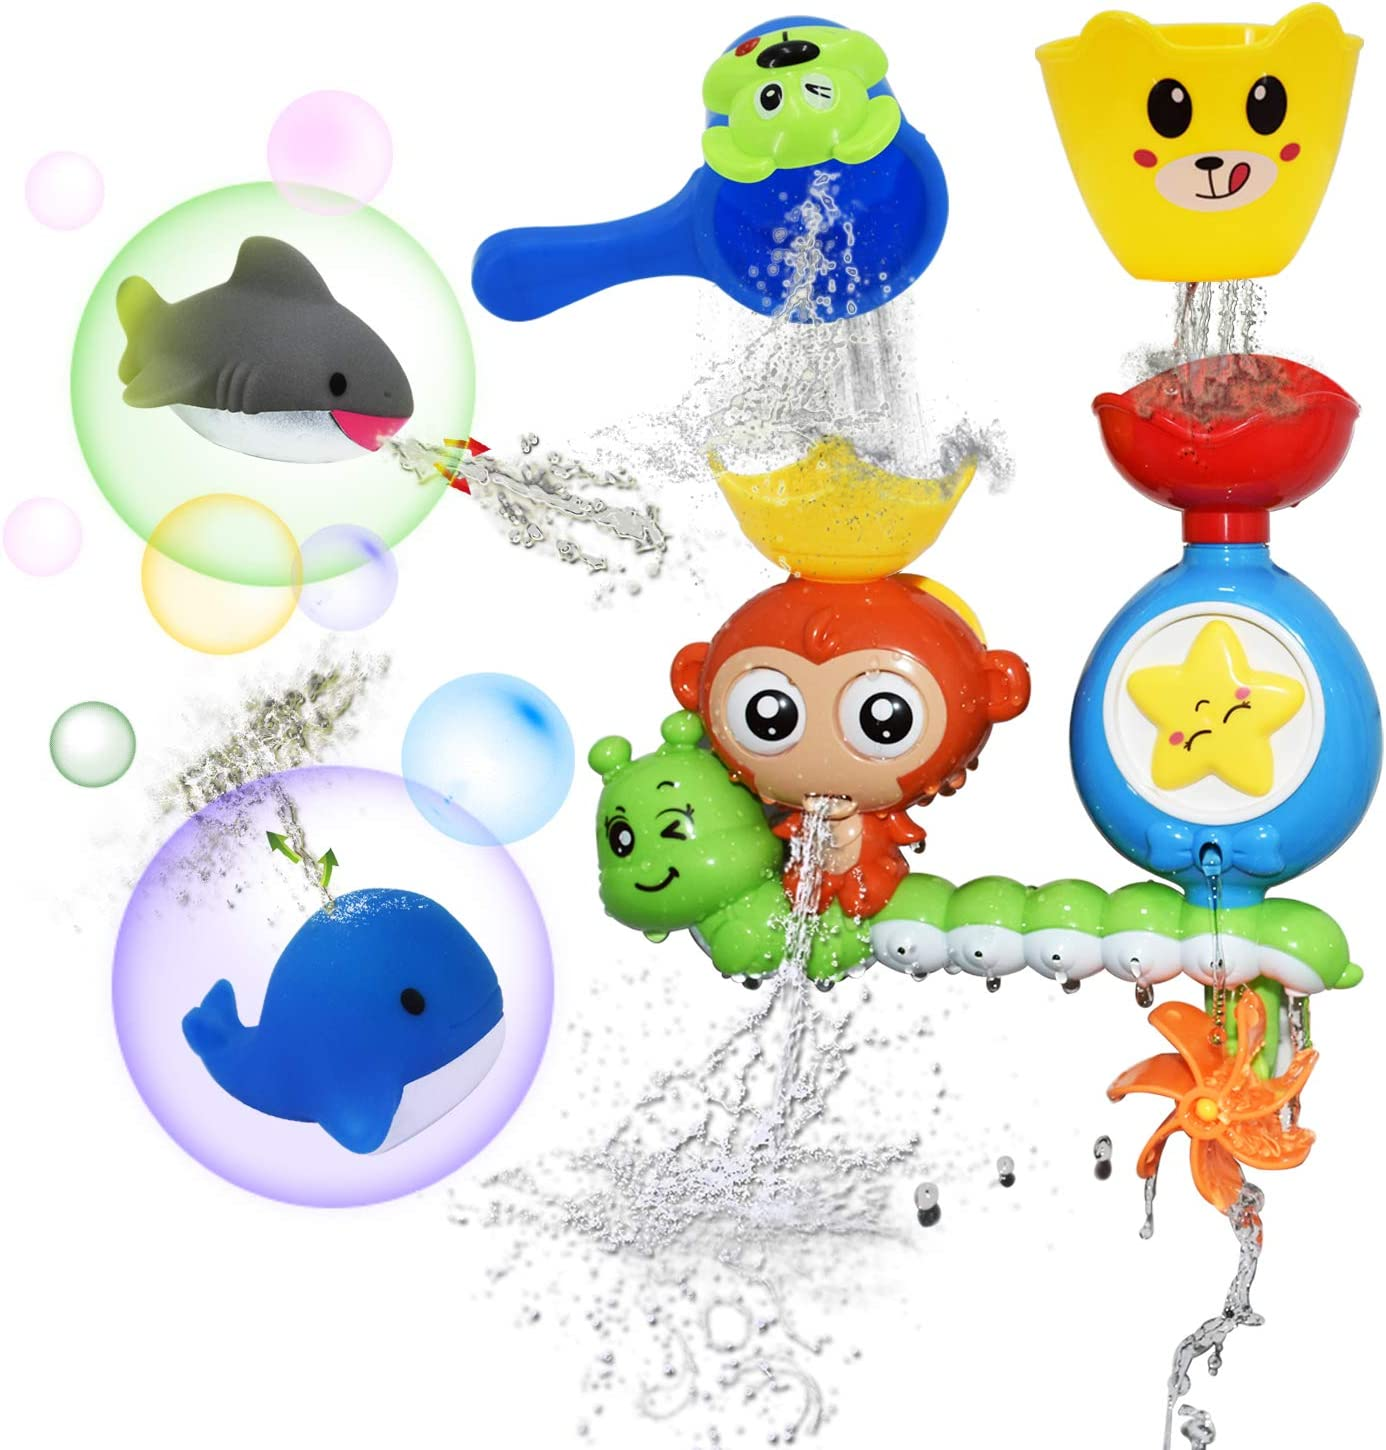 HEDGBOBO Baby Bath Toy Monkey Starfish Flow Spout Make Sprinkle Spinning Gear, 1Water Scoop with Dog face 1 Shark Squirt 1 Whale Squirt for a 1 2 3 Year Old Kids